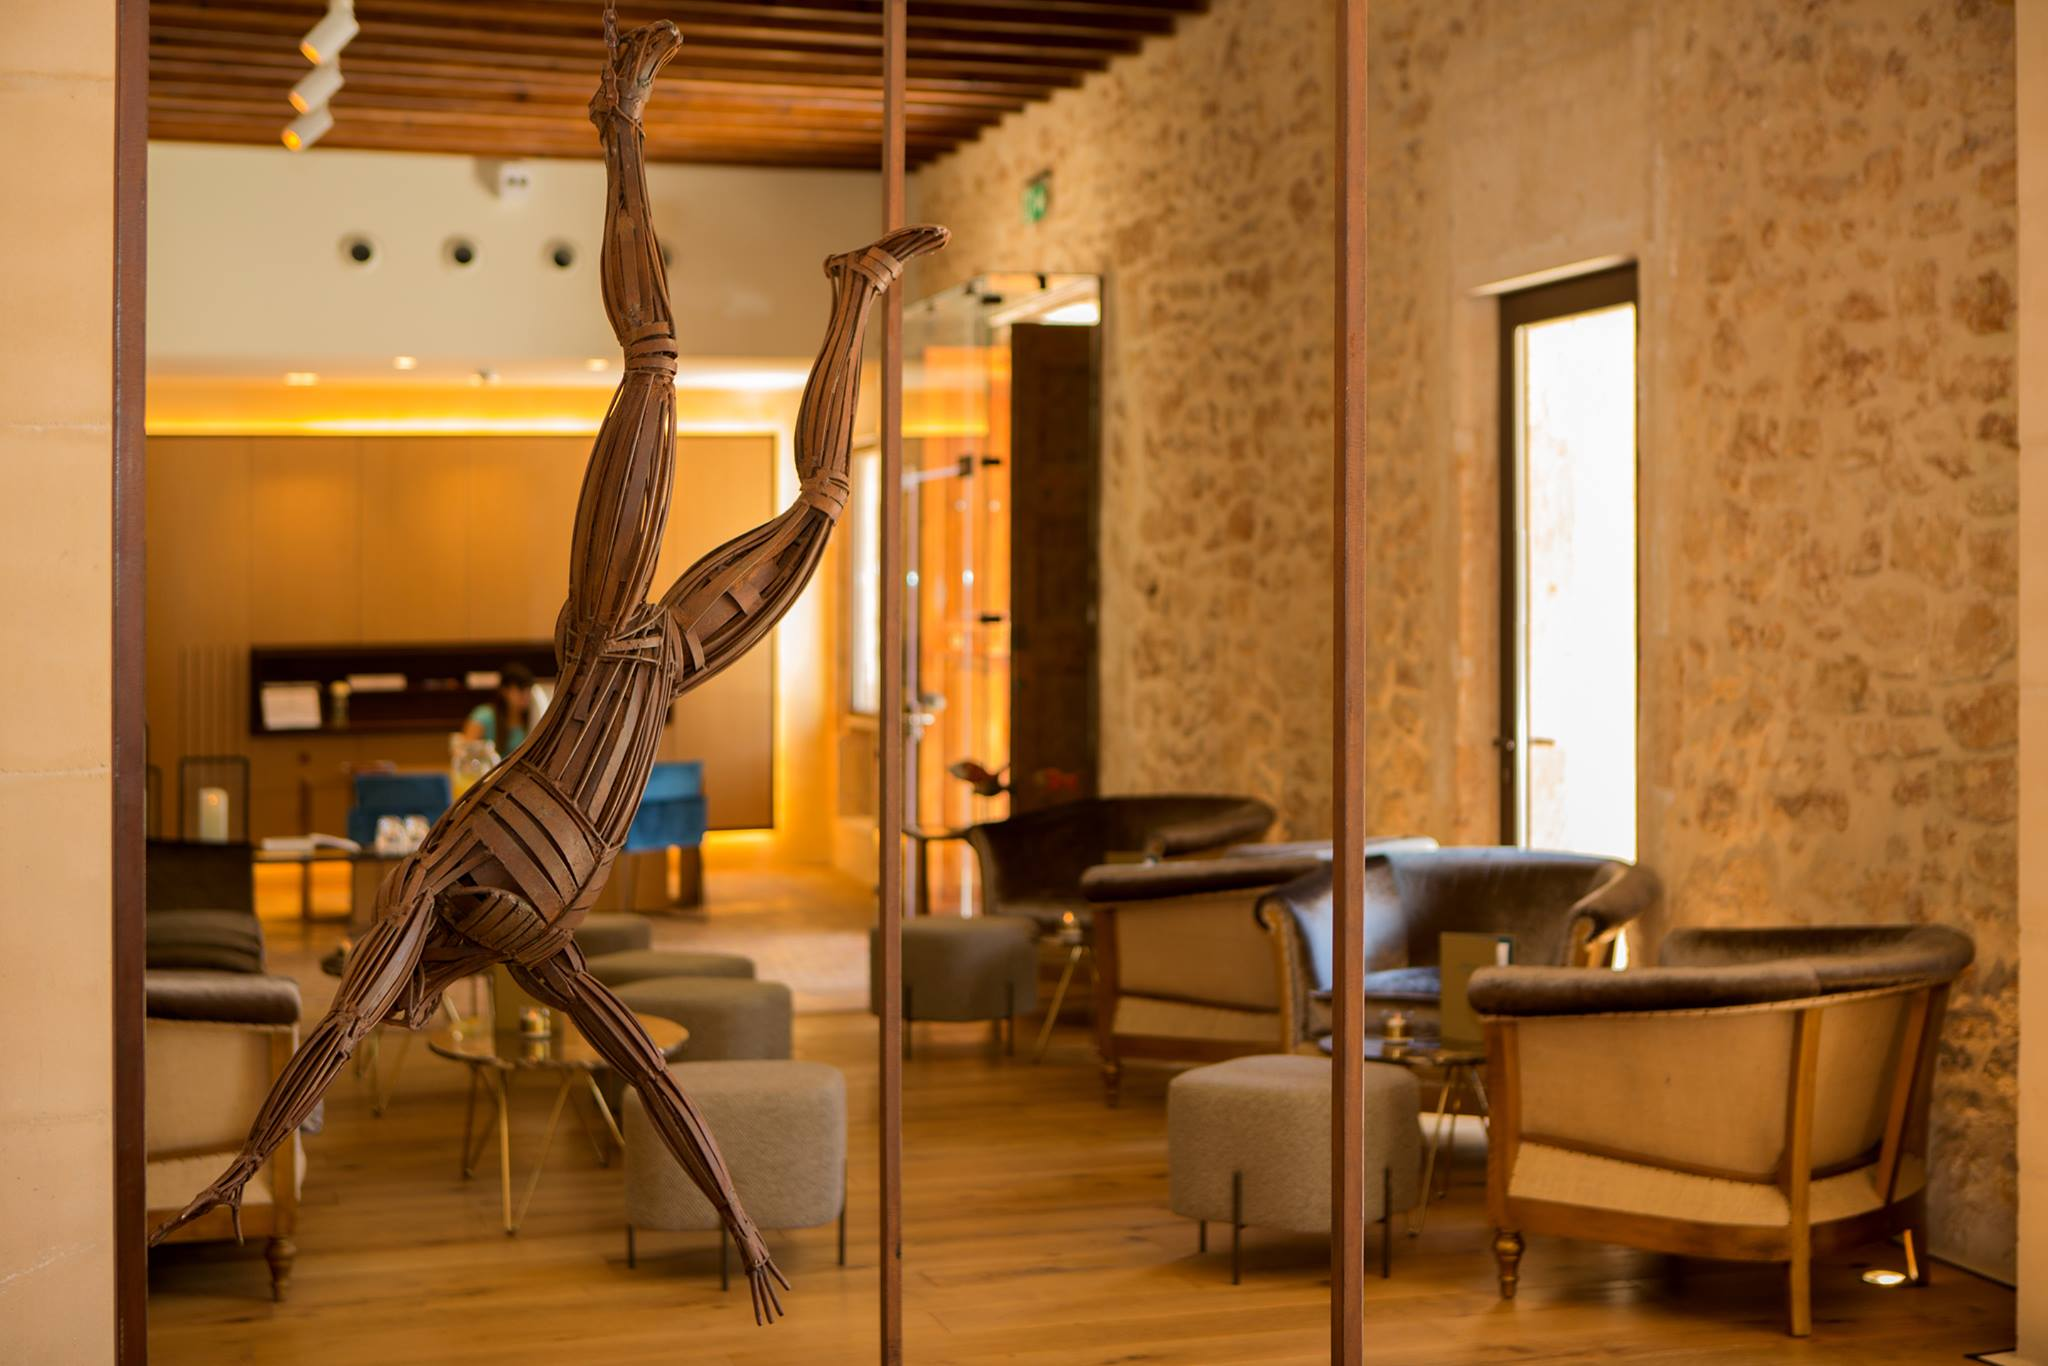 Enjoy the art works at Sa Creu Nova luxury hotel - Mallorca